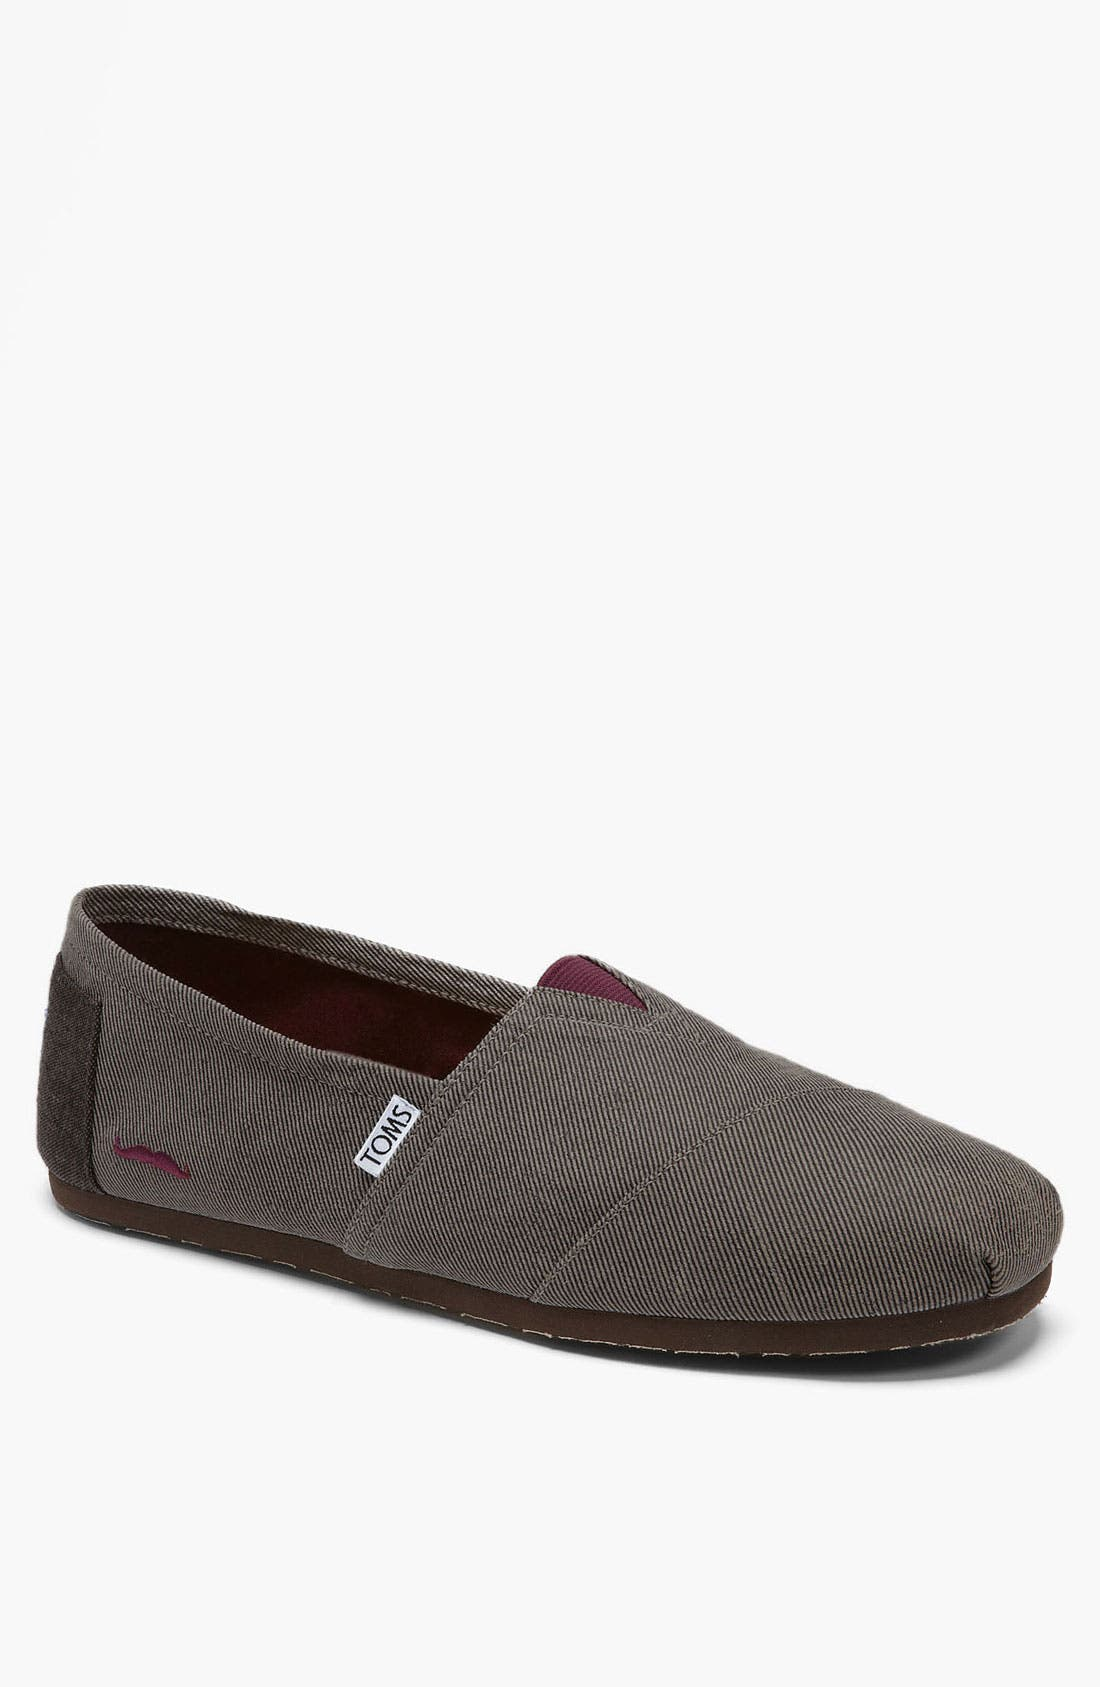 'Classic' Twill Slip-On,                             Main thumbnail 1, color,                             271